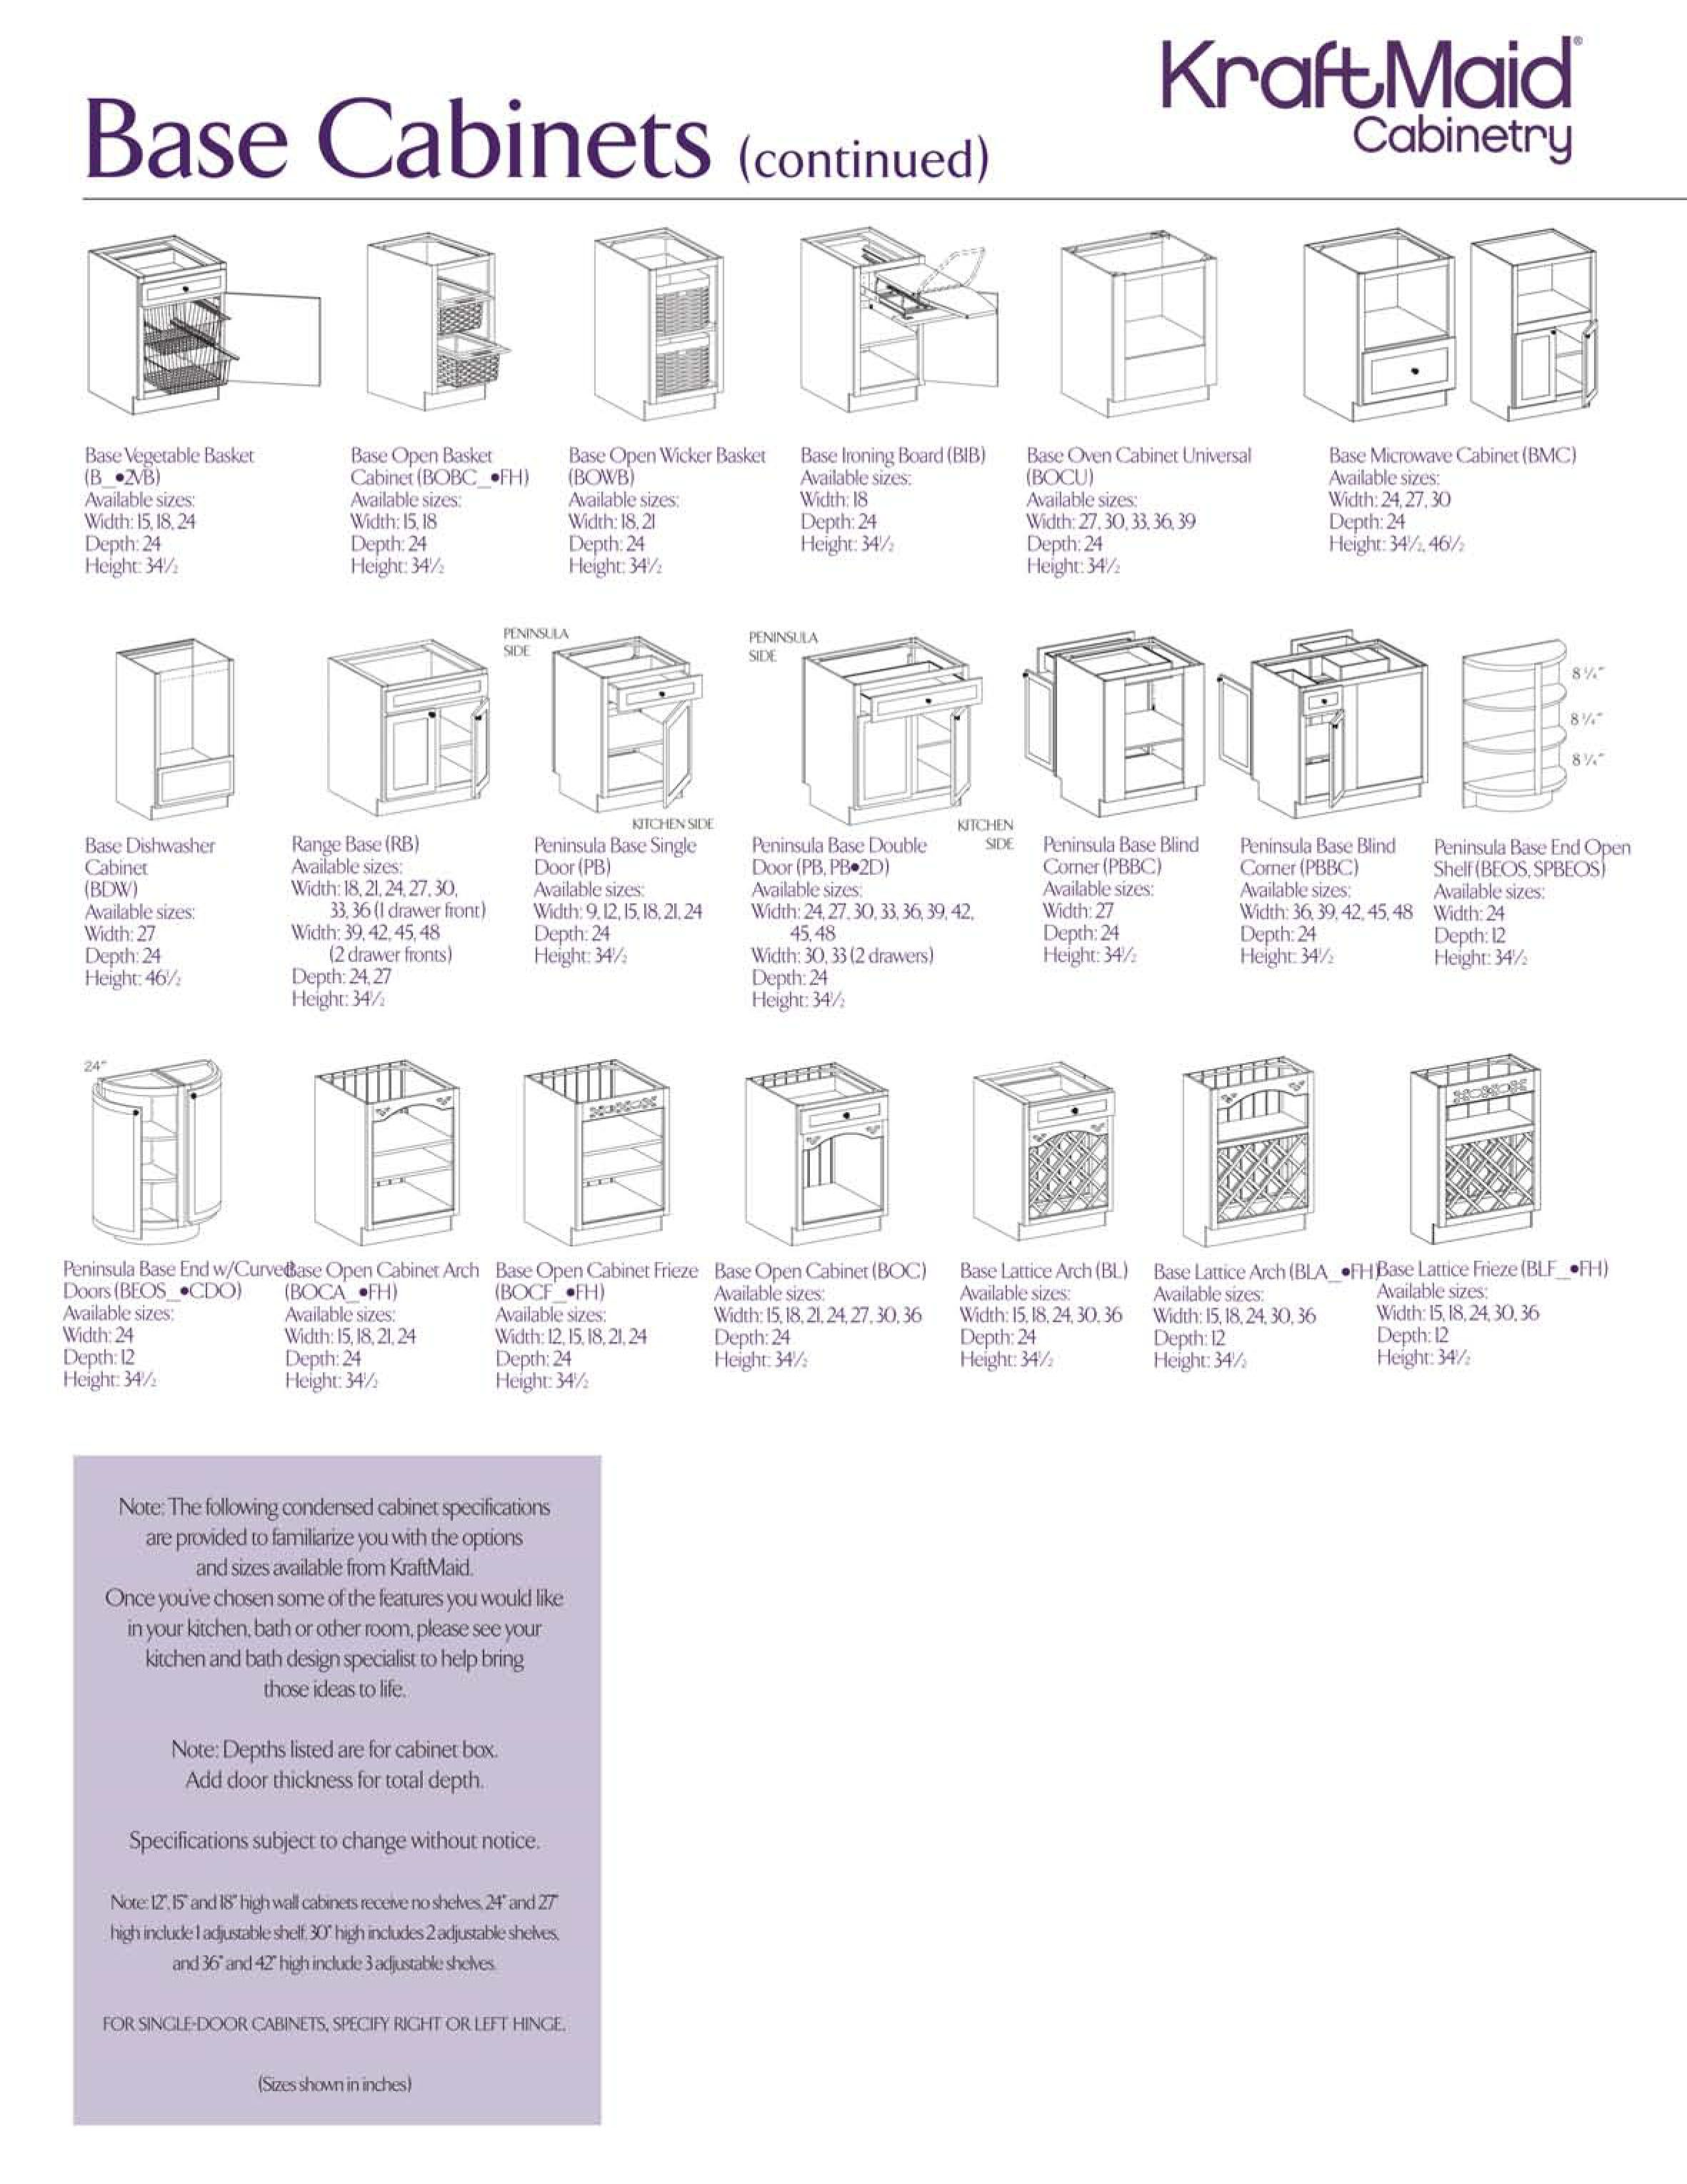 Base Cabinets 4 Kraftmaid Kitchen Cabinets Kitchen Cabinet Dimensions Kitchen Examples